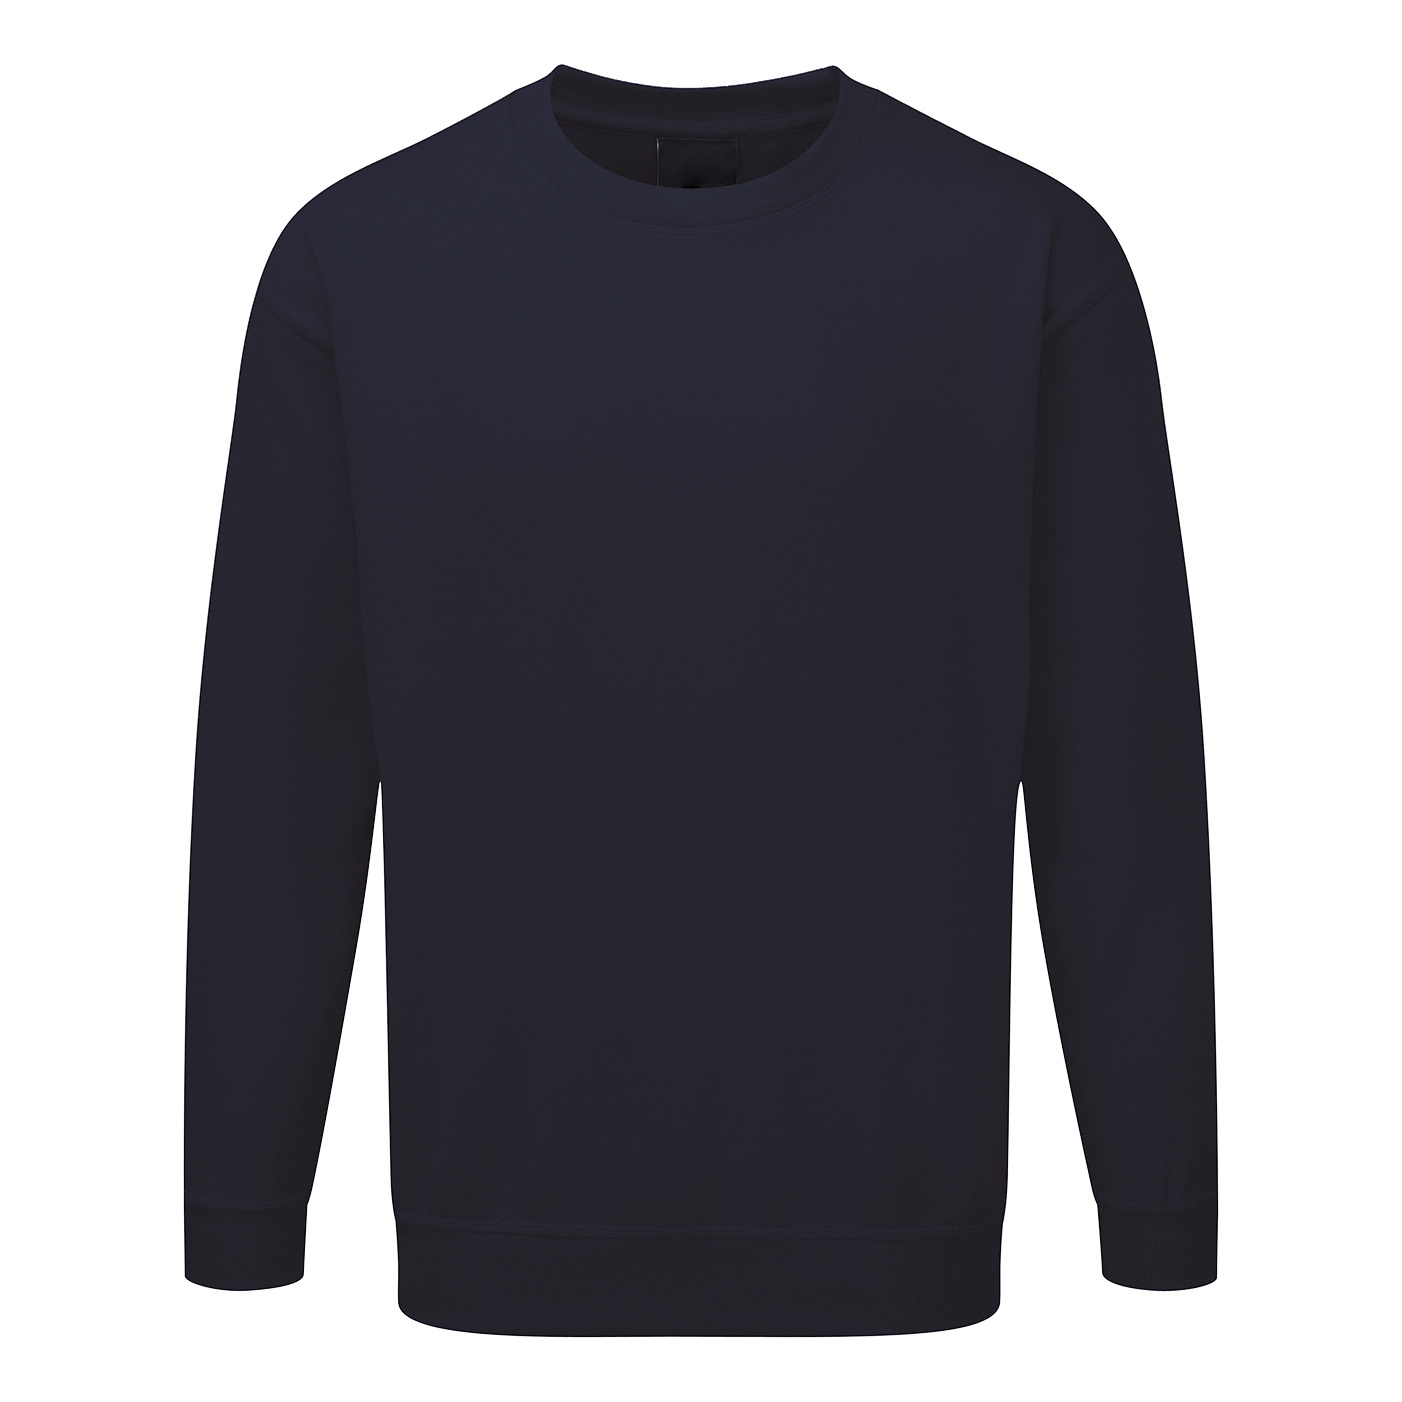 Supertouch Sweatshirt Polyester/Cotton Fabric with Crew Neck Small Navy Ref 56691 *Approx 3 Day Leadtime*